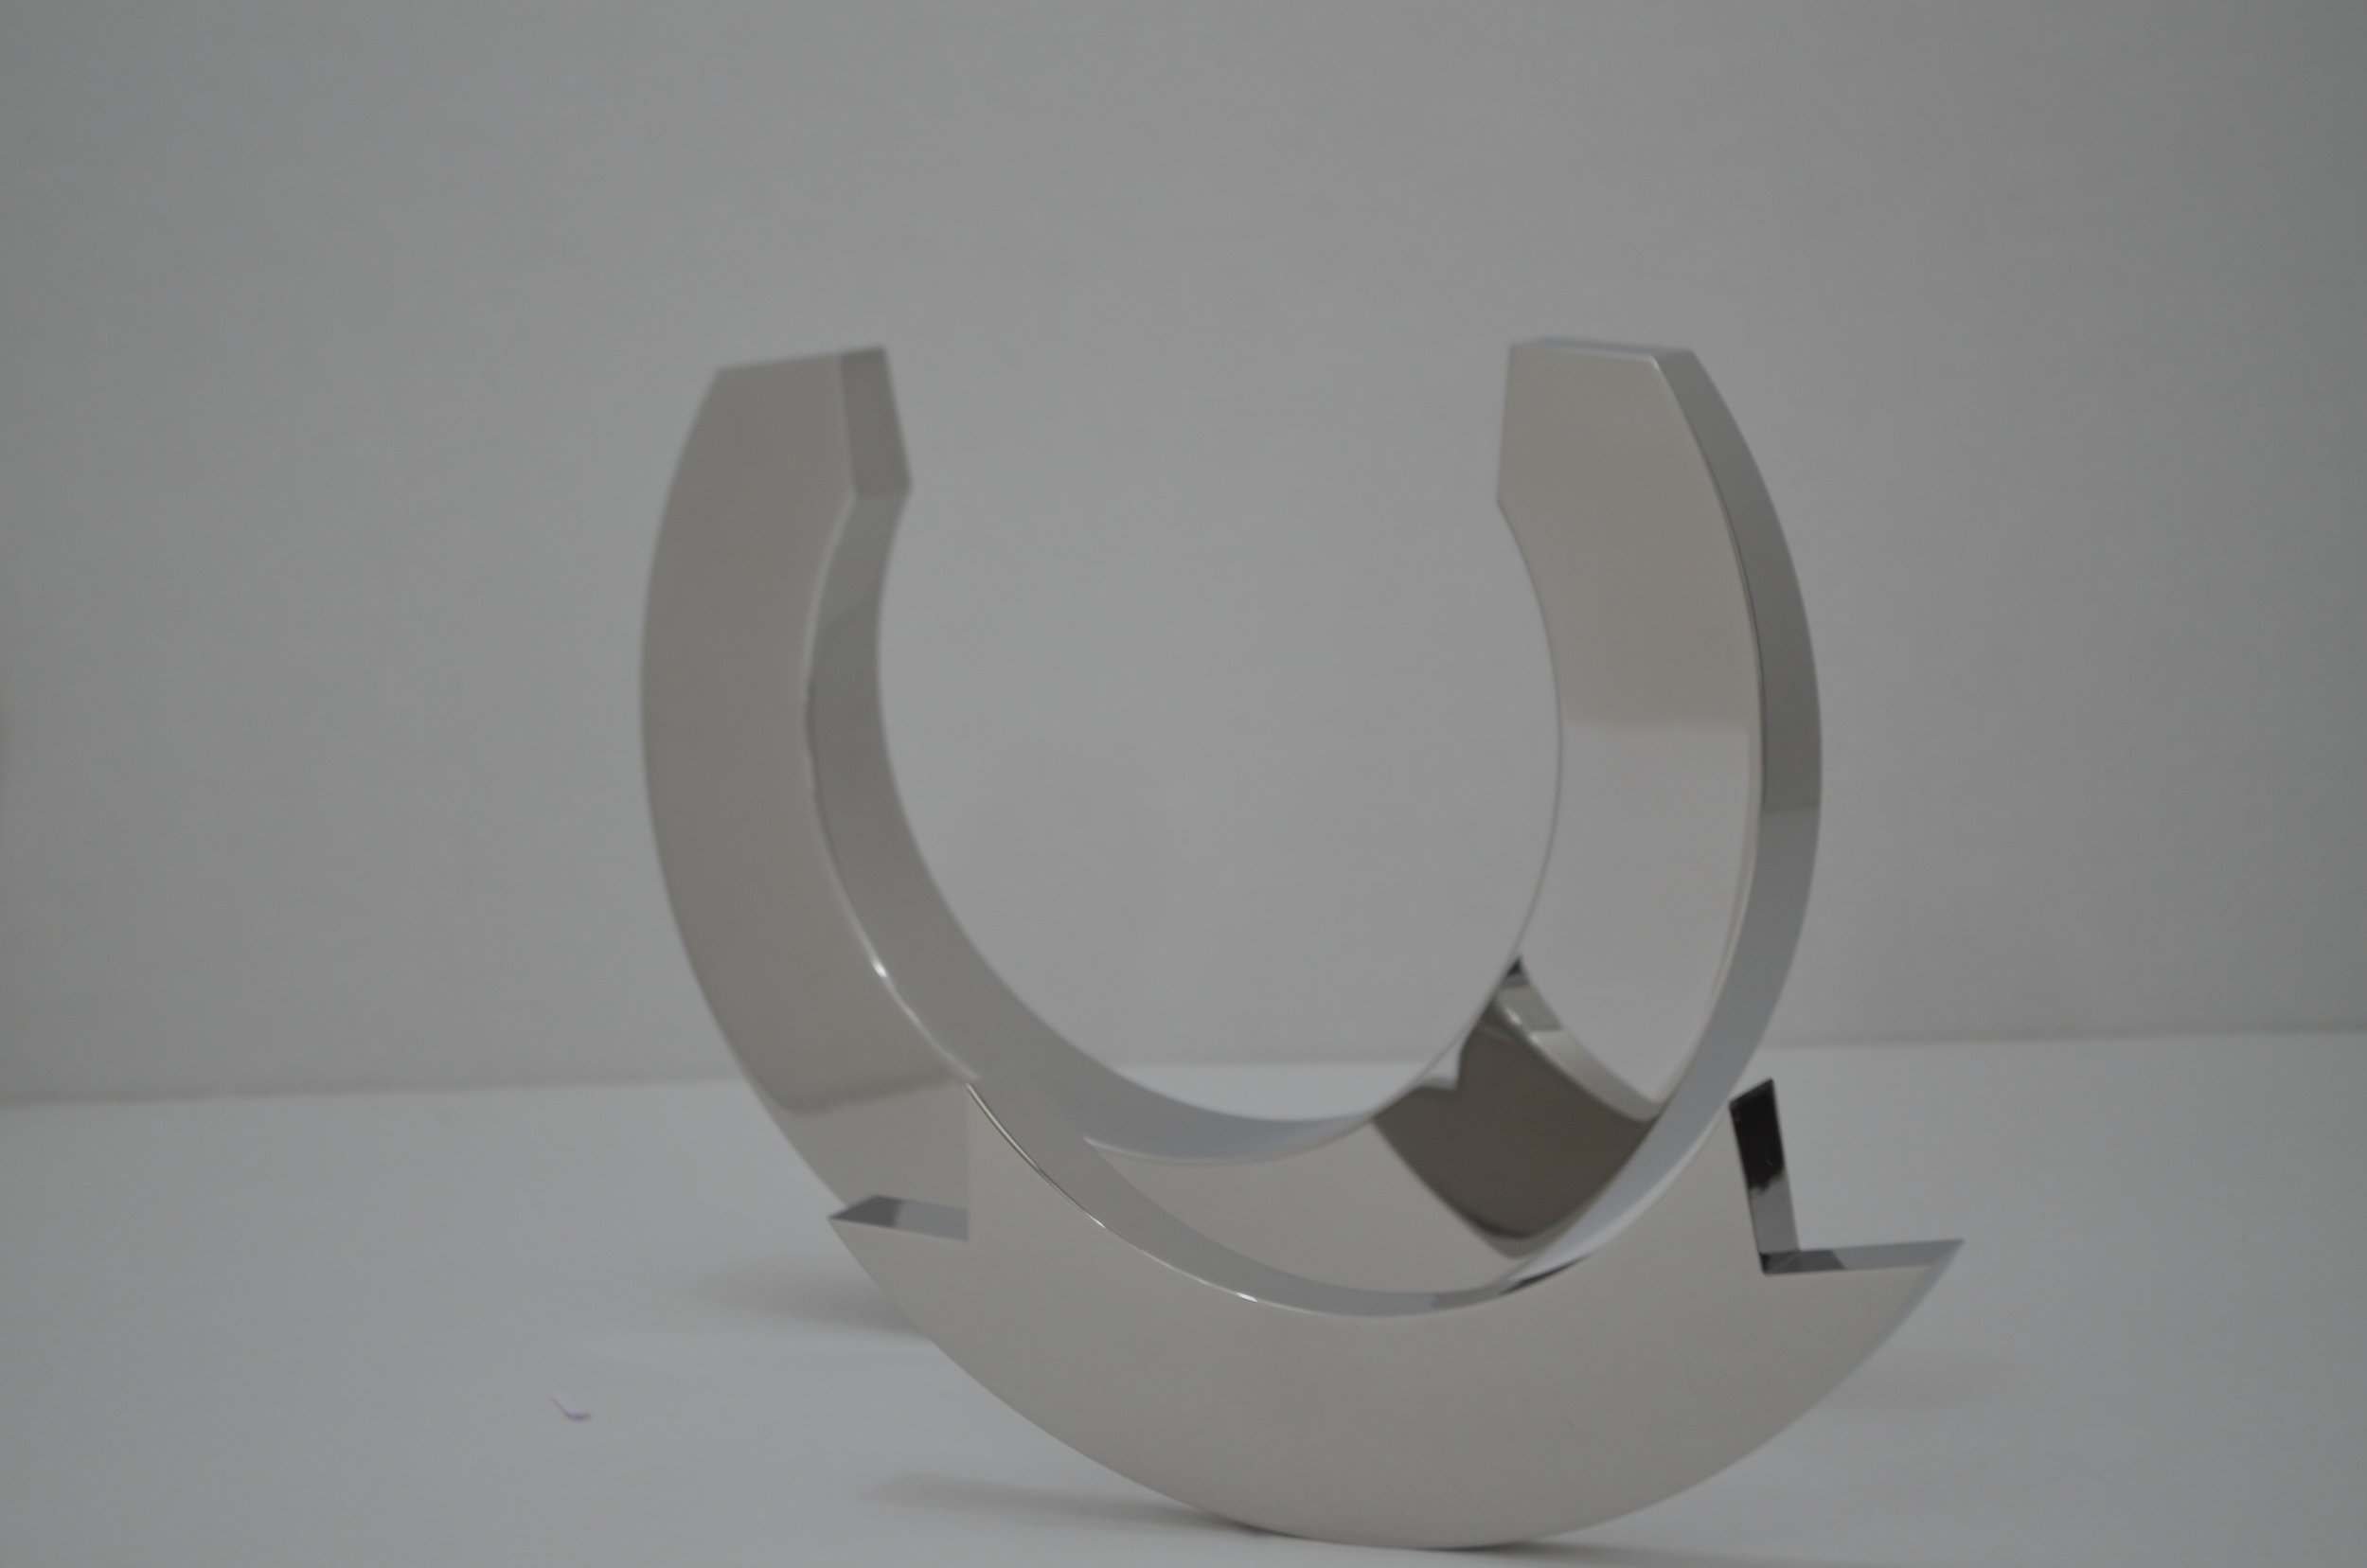 Second view of steel kinetic sculpture in two pieces